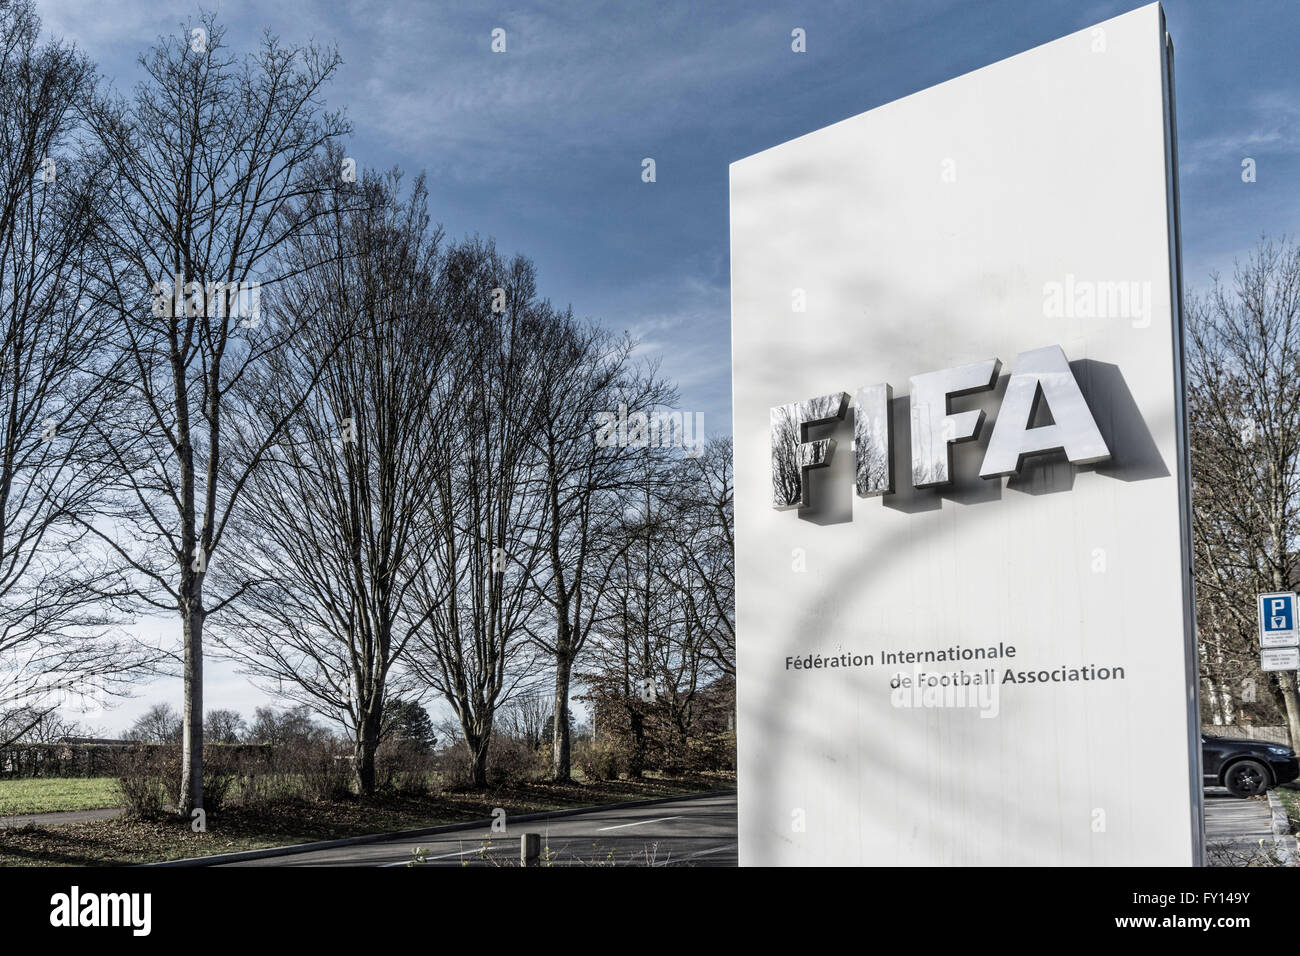 FIFA, Fédération Internationale de Football Association, Zürich Stockbild